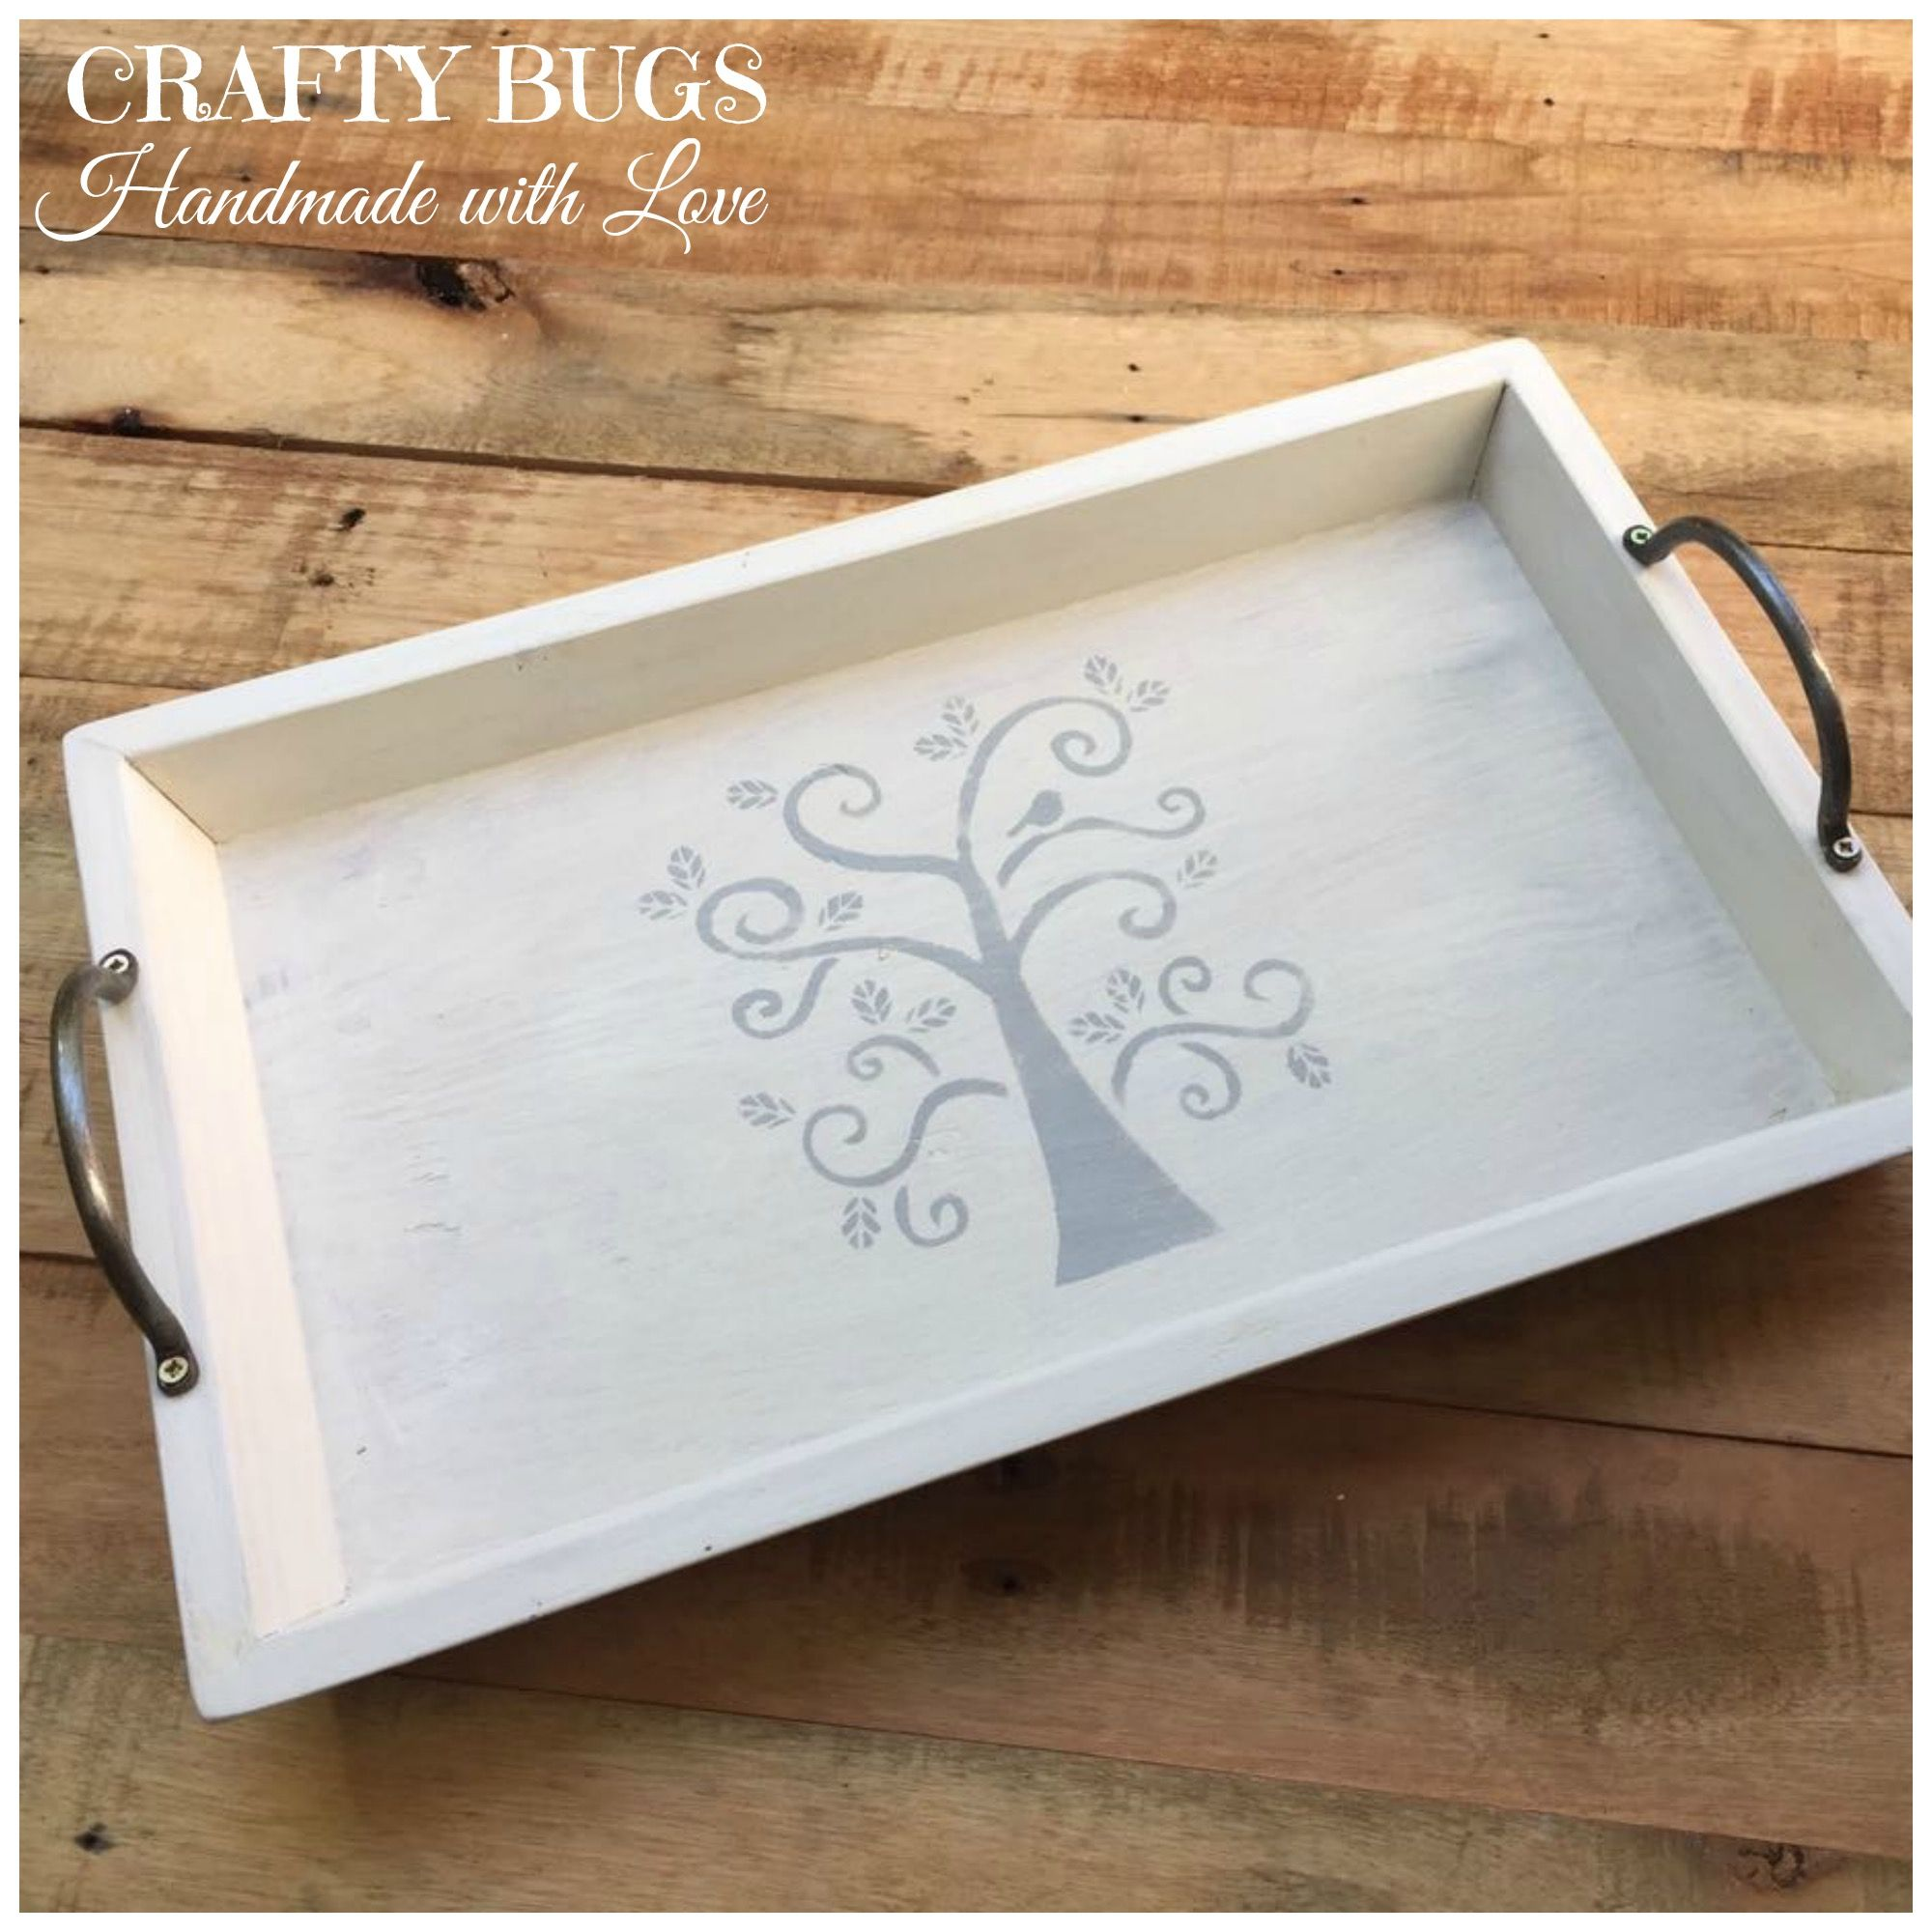 Uncategorized Handmade Wooden Trays handmade wooden wrought iron tea tray time crafty bugs tray